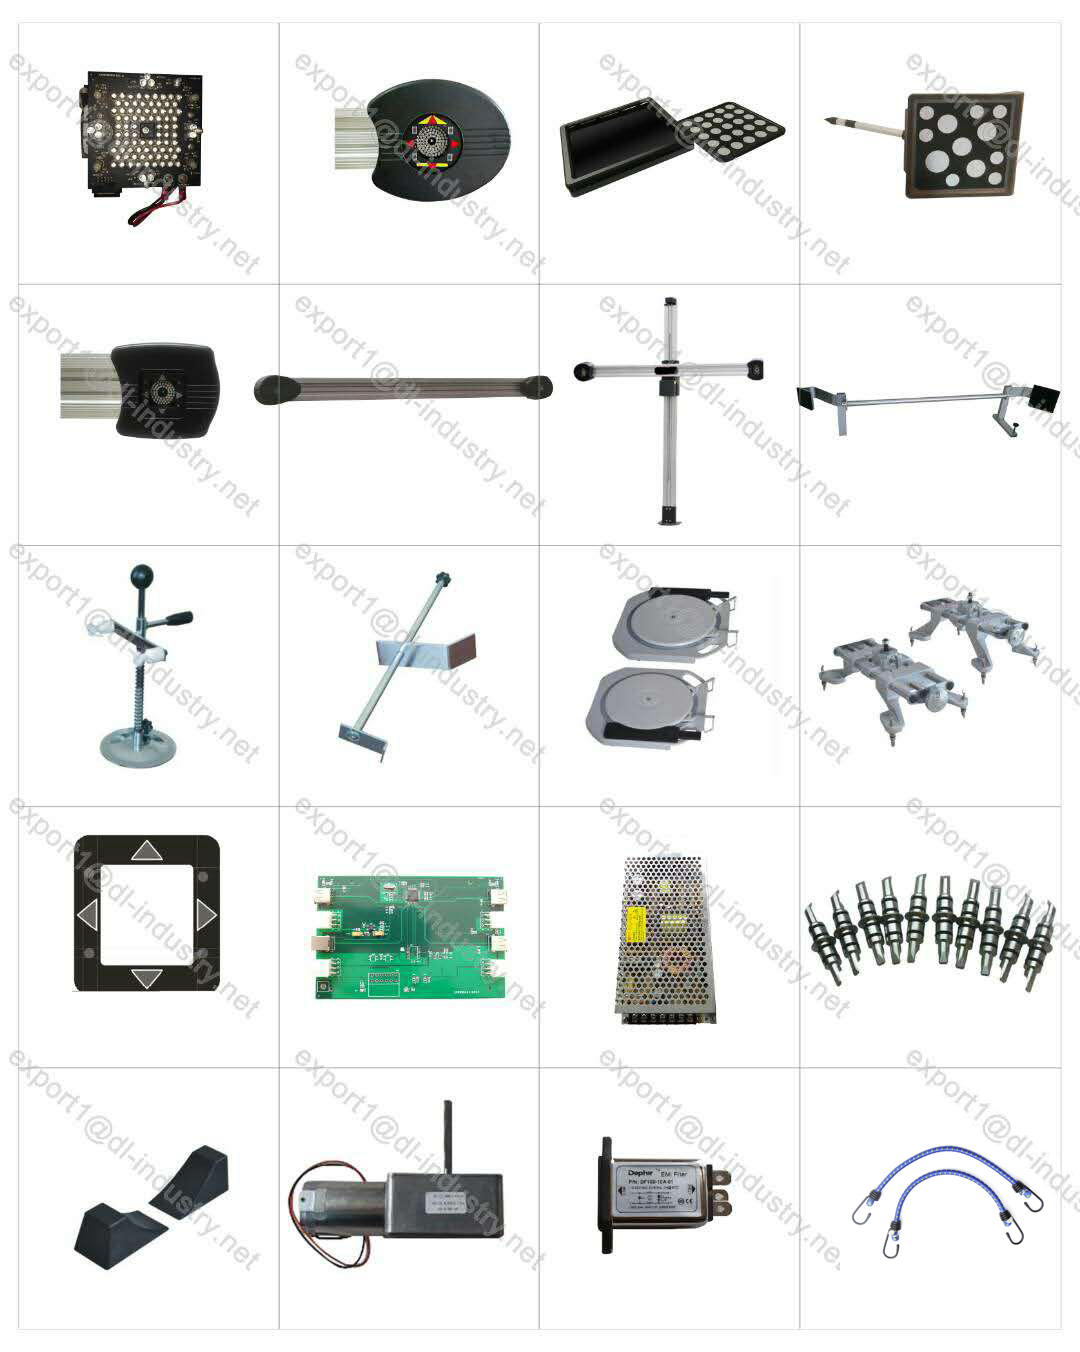 JBC Alignment Parts Wheel Alignment Power Supply, Hofmann Wheel Alignment Power Supply, Power Supply in 3D Wheel Aligner